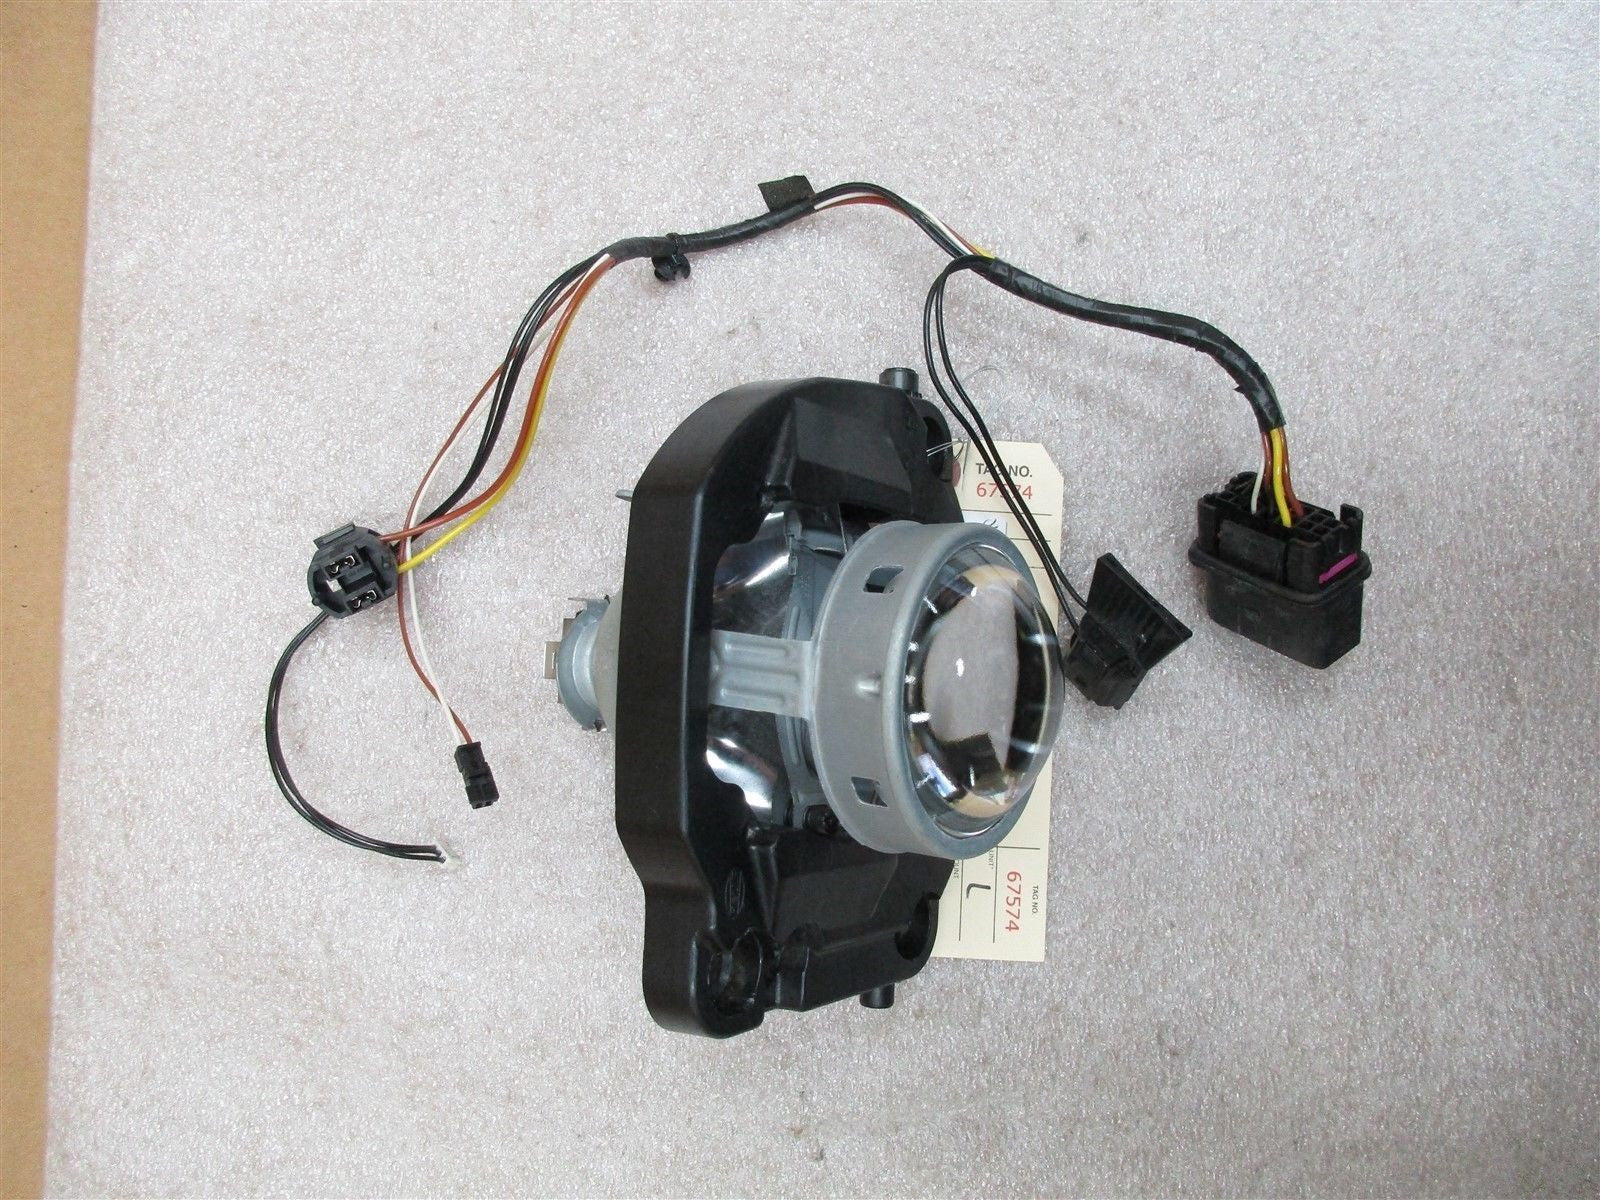 08 cayenne s awd porsche 957 l headlight hardware wiring harness rh partssociety com 2004 porsche cayenne headlight wiring harness 2004 porsche cayenne headlight wiring harness